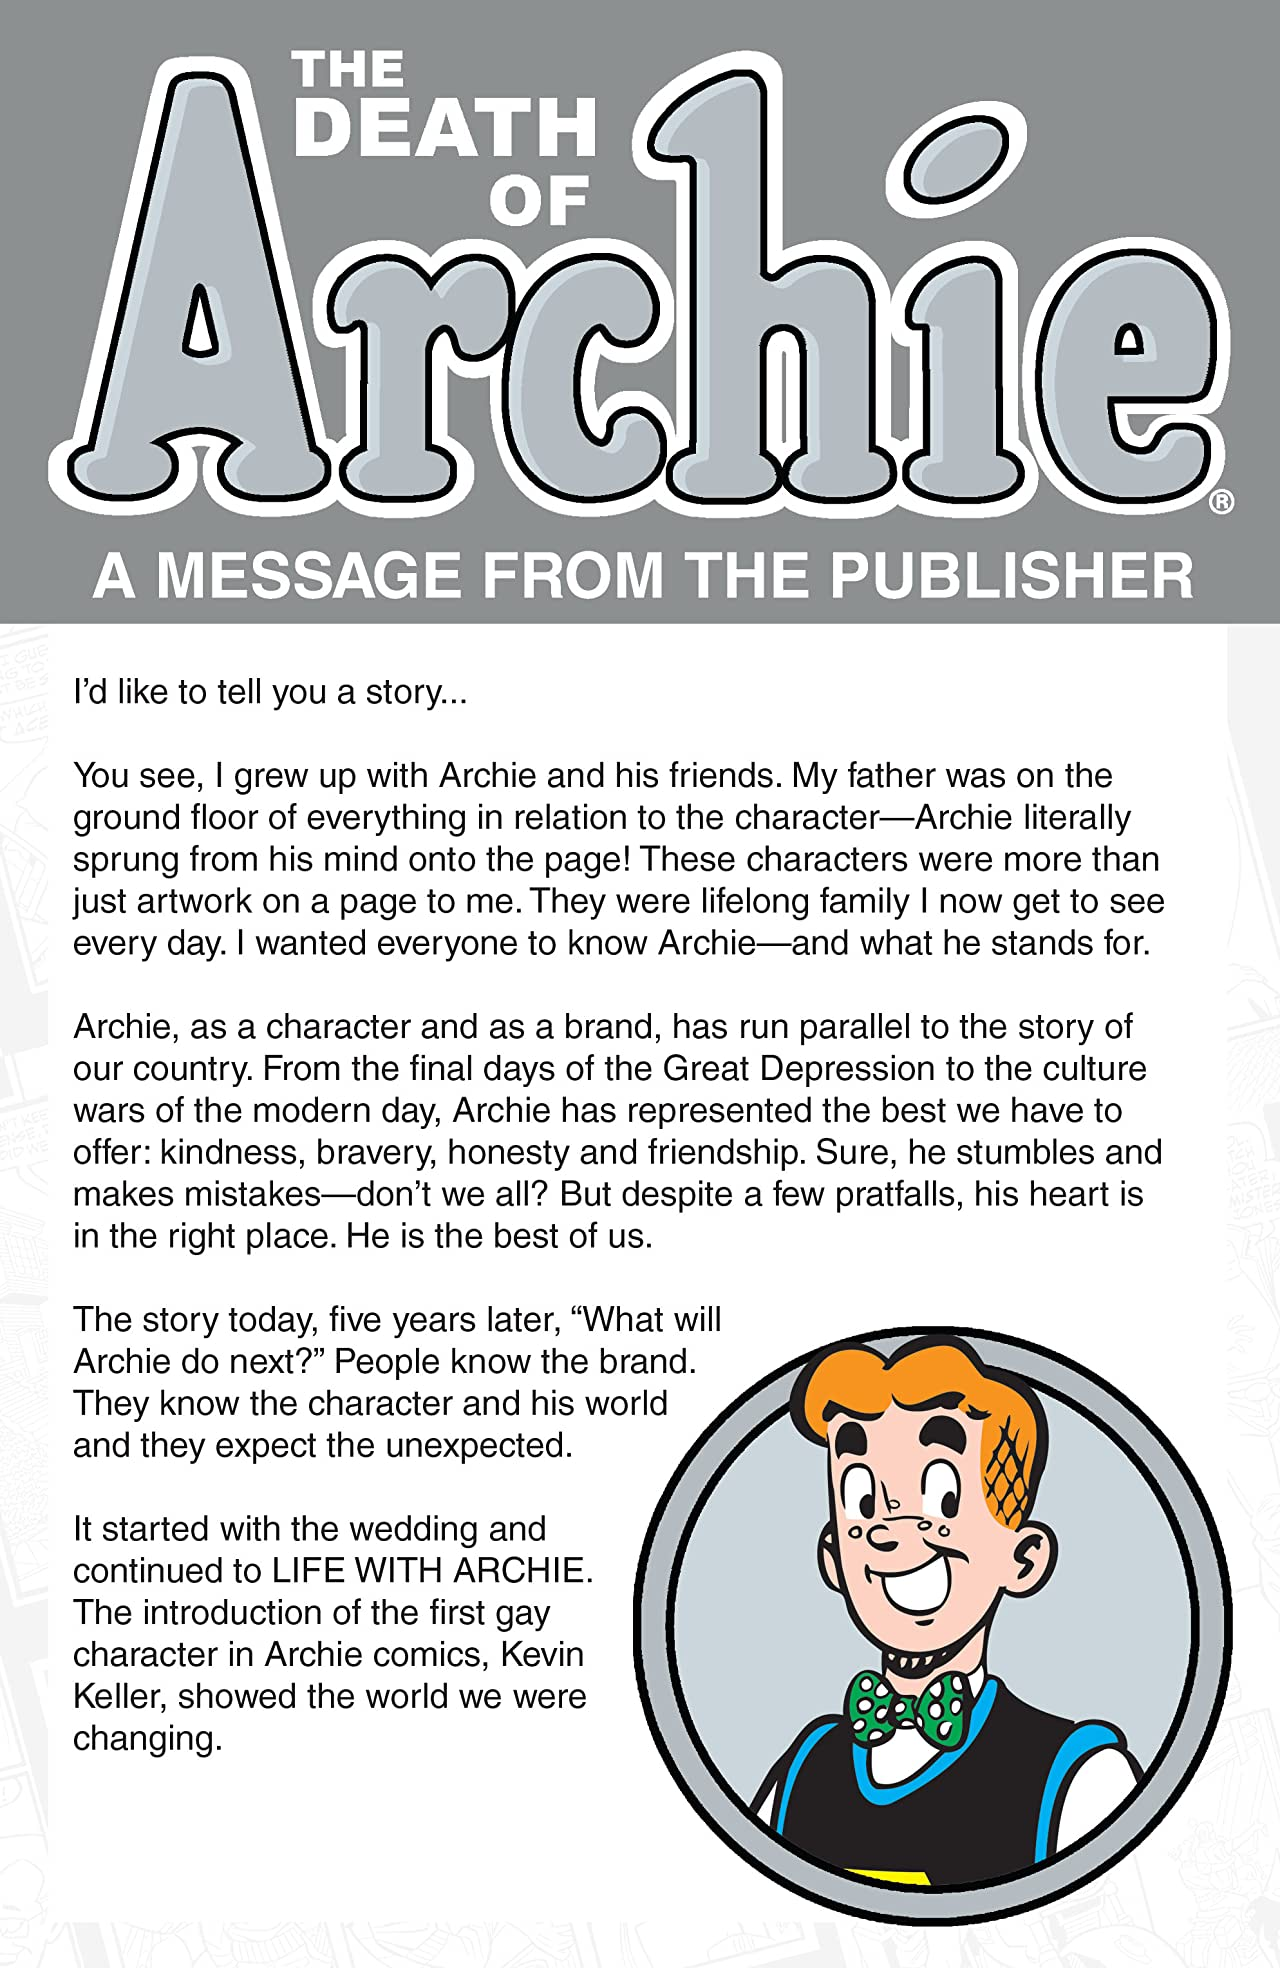 The Death of Archie